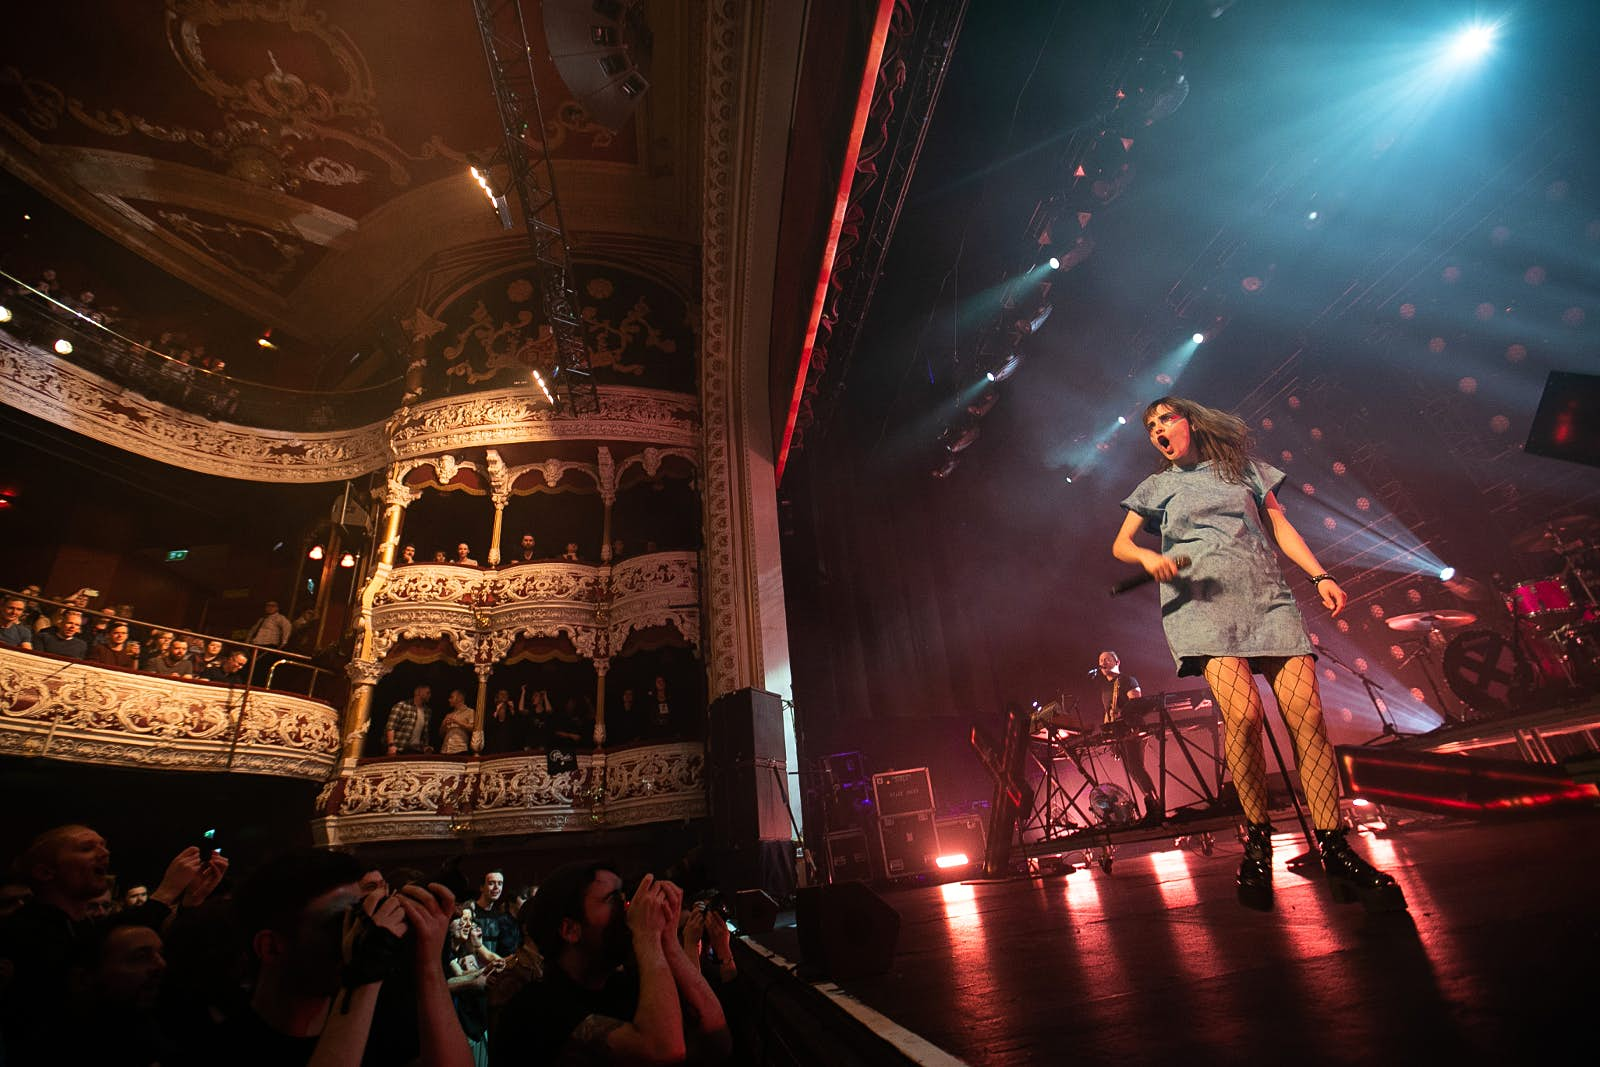 CHVRCHES at the Olympia Theatre in Dublin